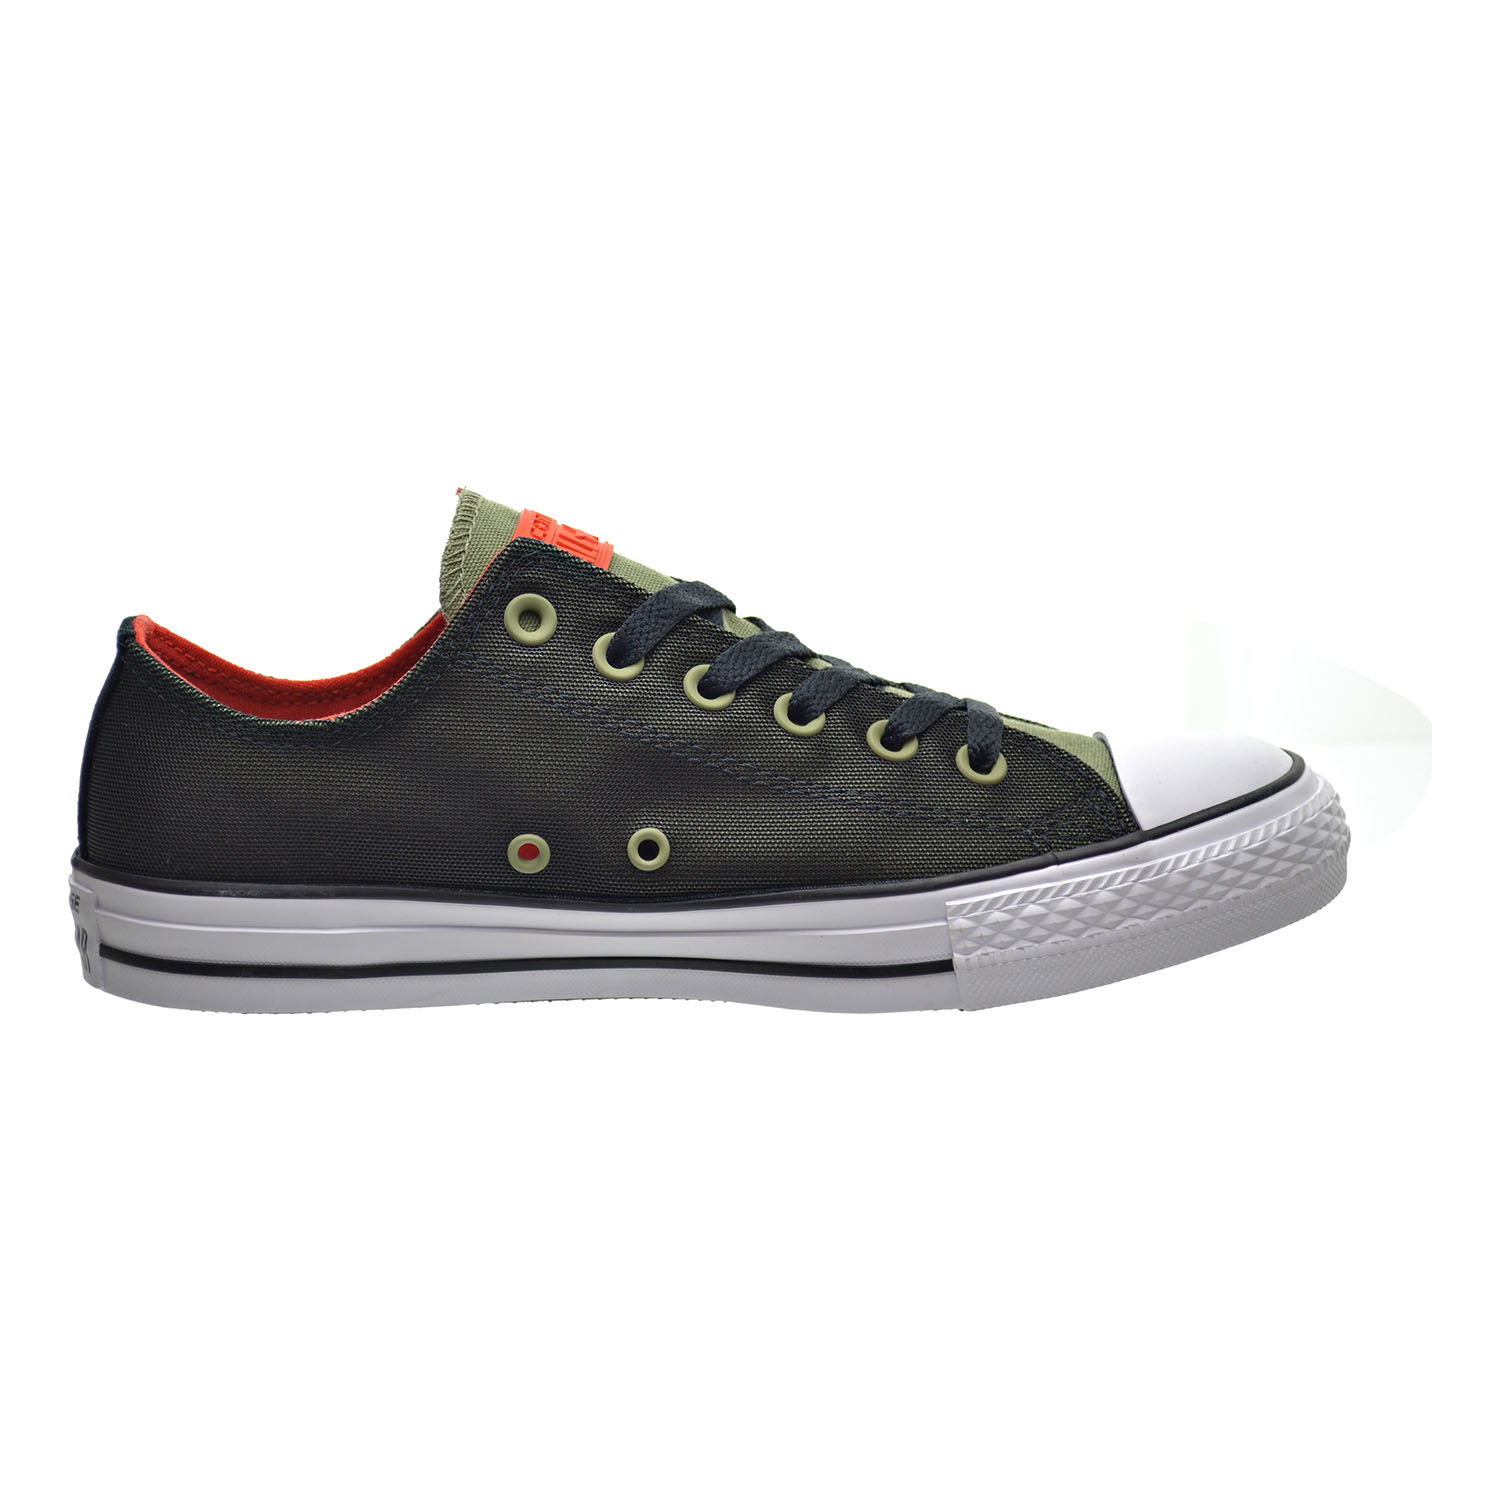 ebe9515a0274 Converse Chuck Taylor All Star OX Kurim Unisex Shoes Fatigue Green Black Signal  Red 153970c